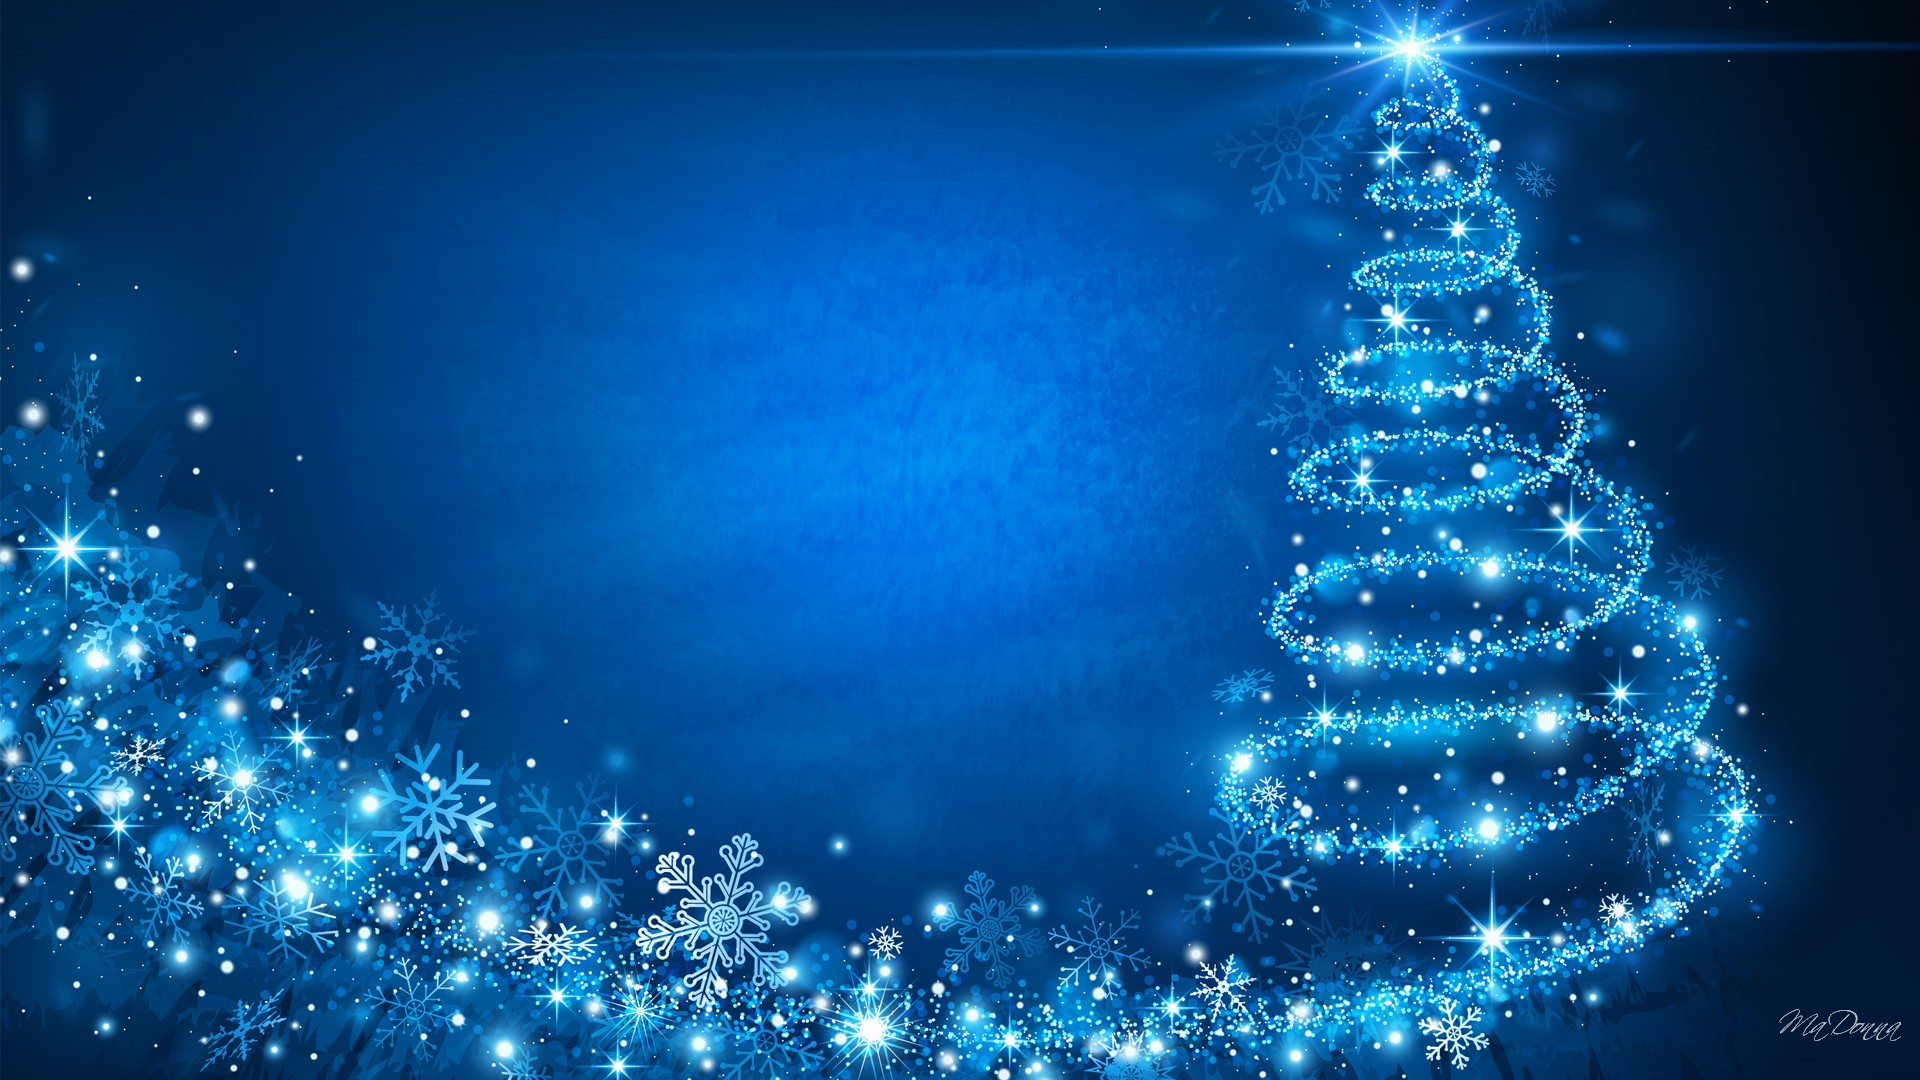 blue-christmas-background-wallpaper-2